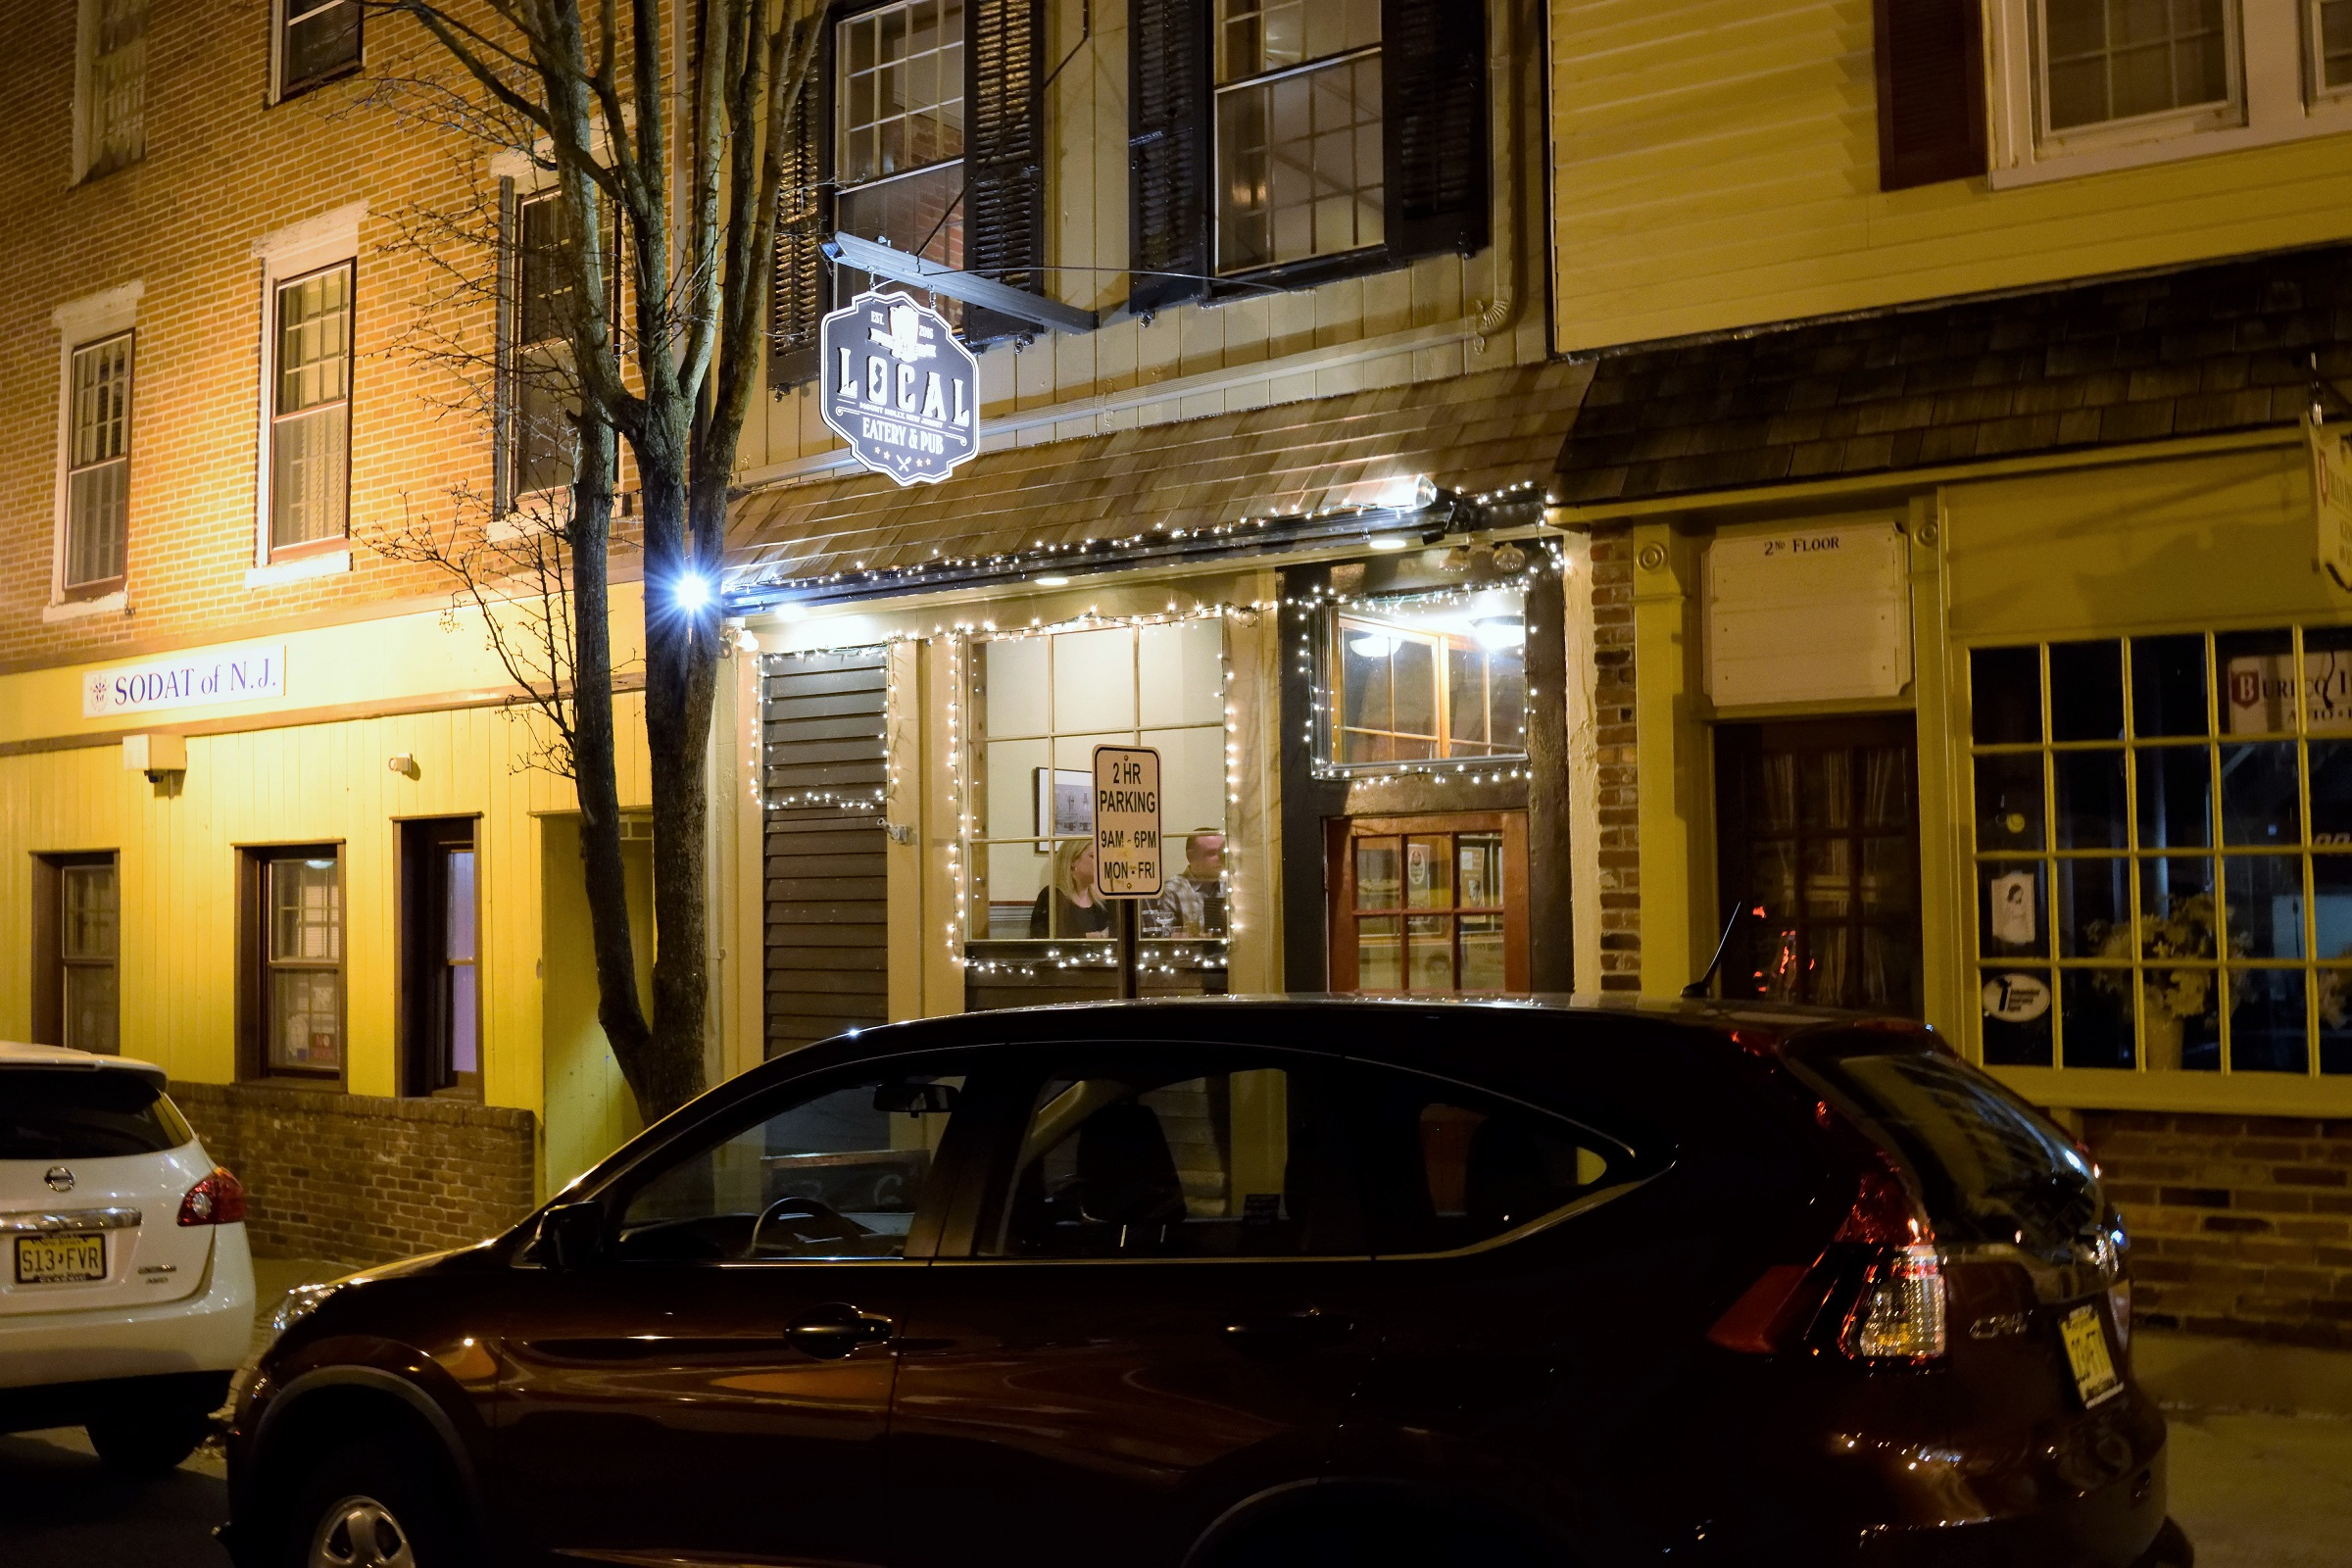 Quaint location with good beer - The Local Eatery & Pub